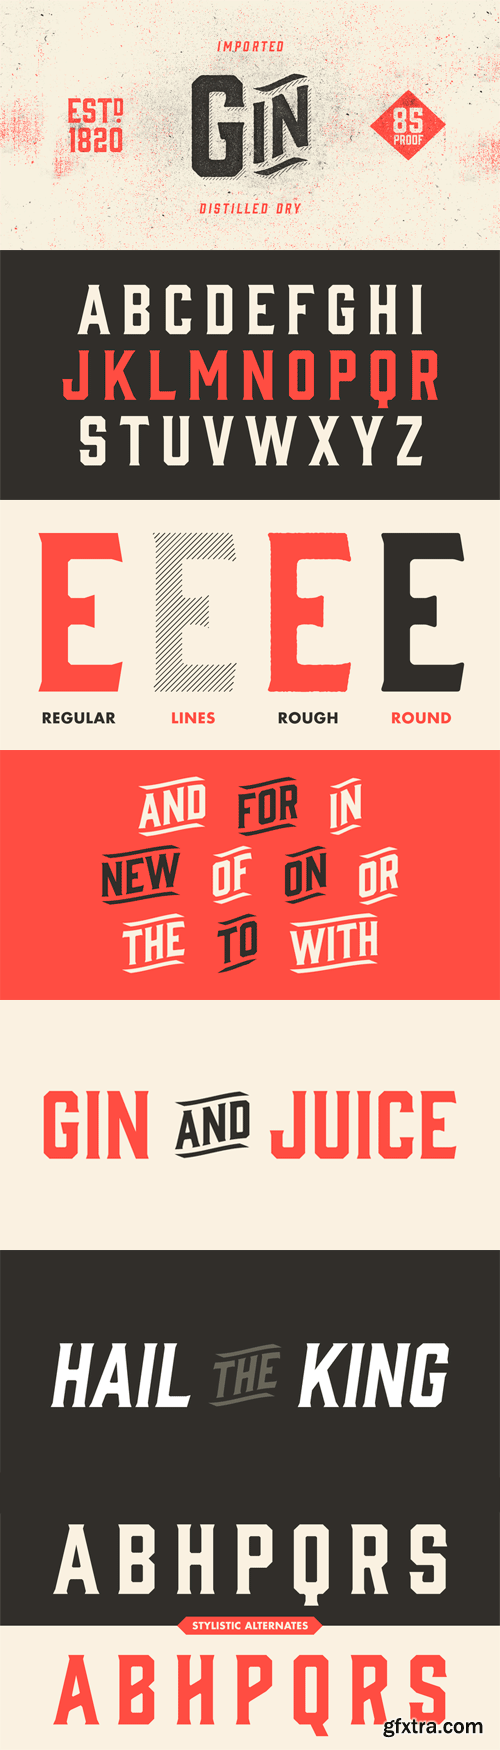 Gin Font Family - 8 Fonts for $45